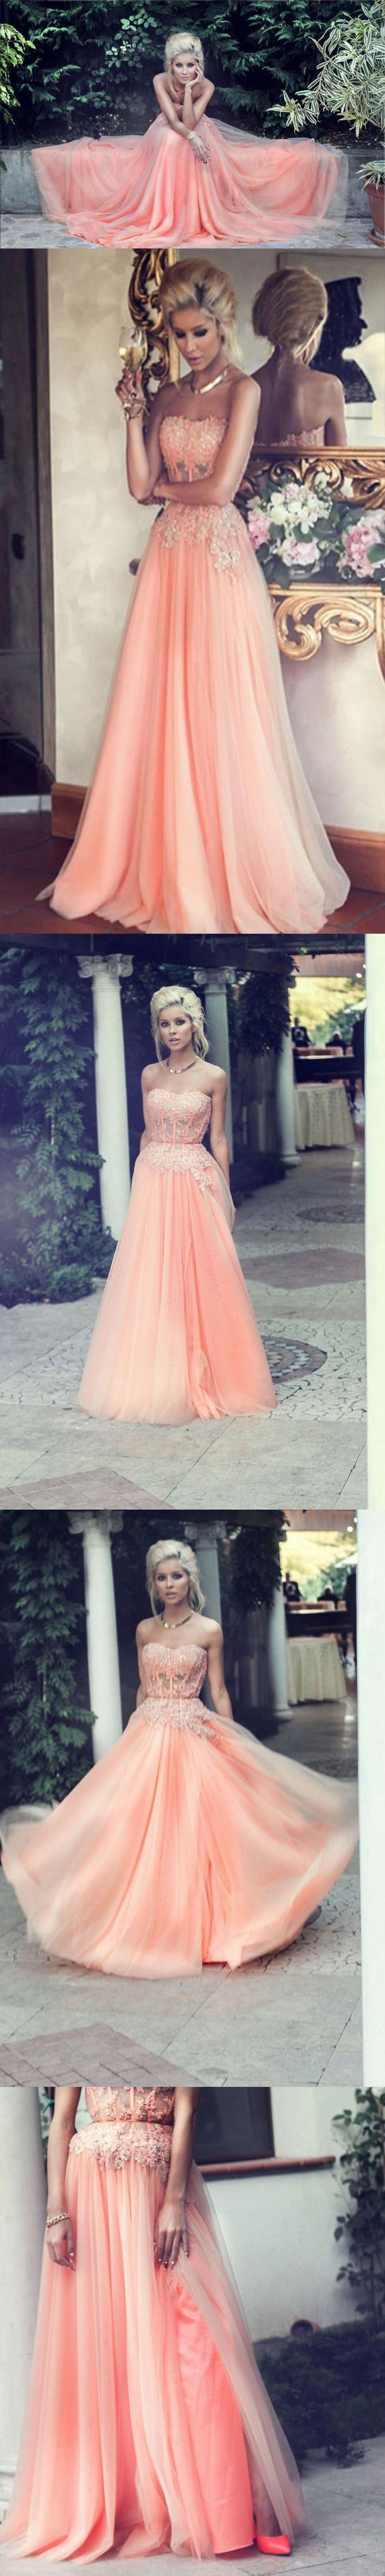 best festa images on pinterest party outfits party fashion and